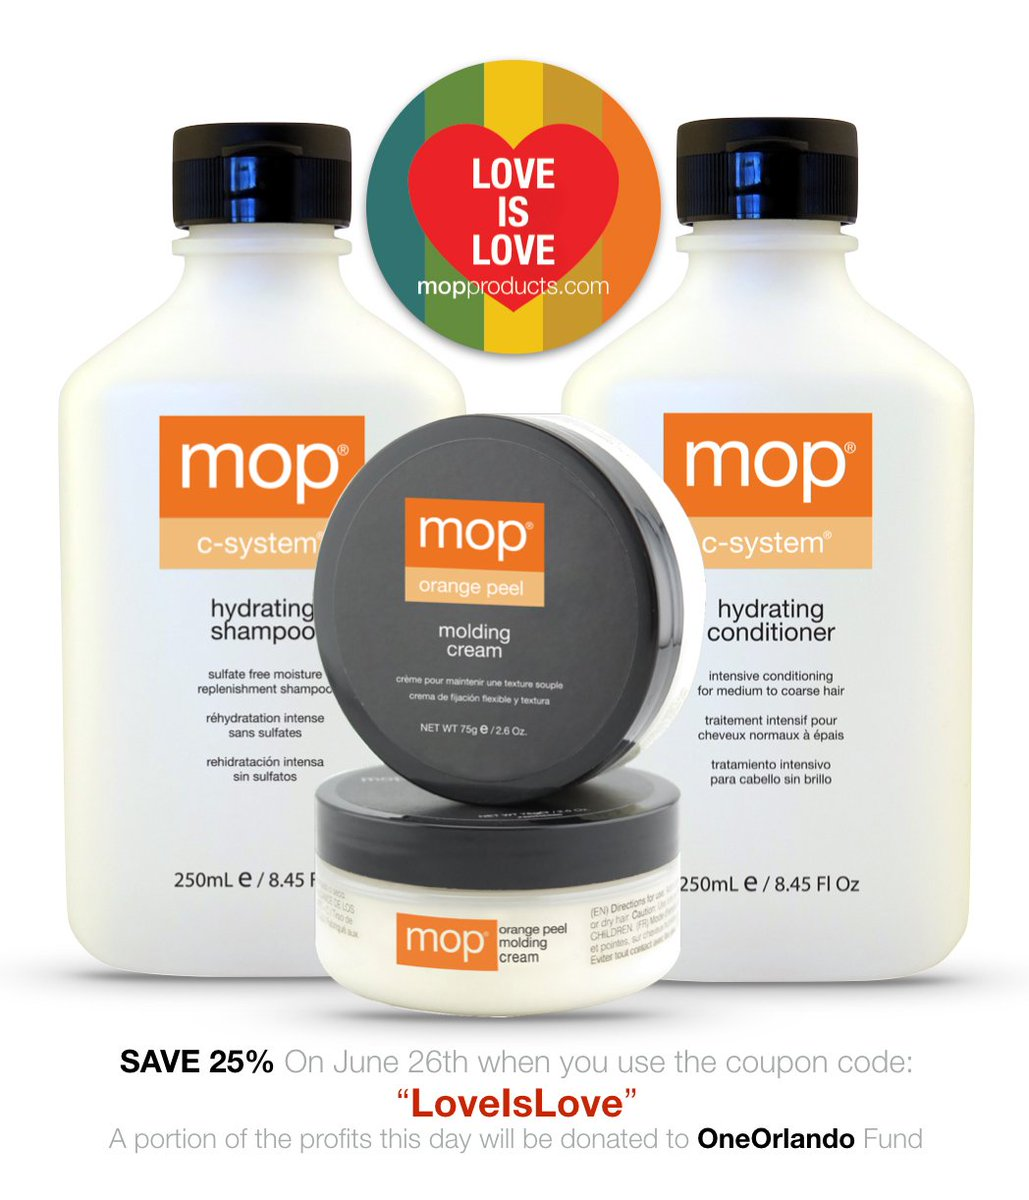 Mop Hair Products On Twitter Save 25 When You Use The Coupon Code Loveislove Remember To Showyourmop Pride Lgbtq Loveislove Hair